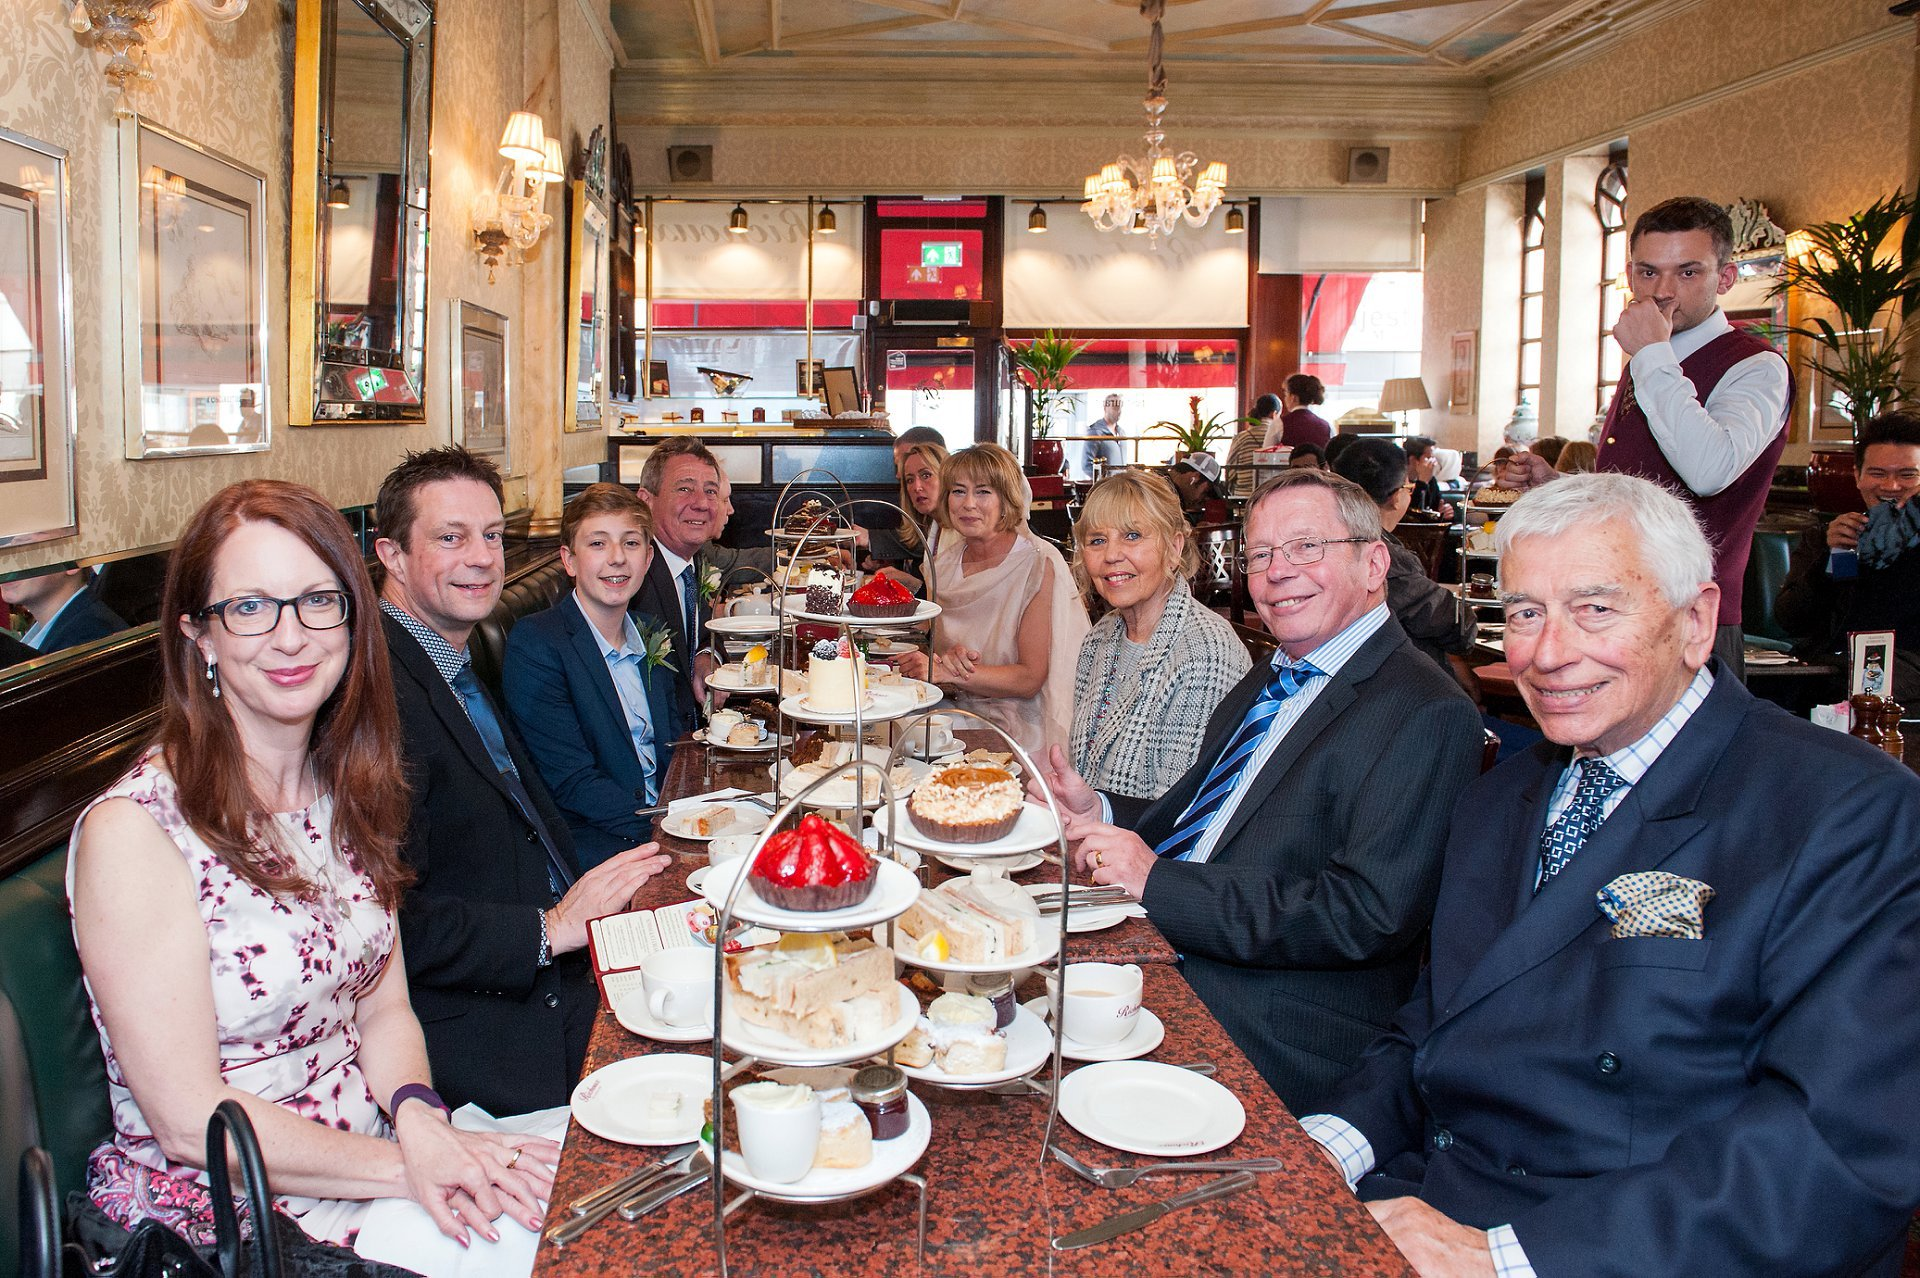 Guests celebrate wedding reception in Richoux, South Audley Street, Mayfair, London with a delicious tea wedding breakfast